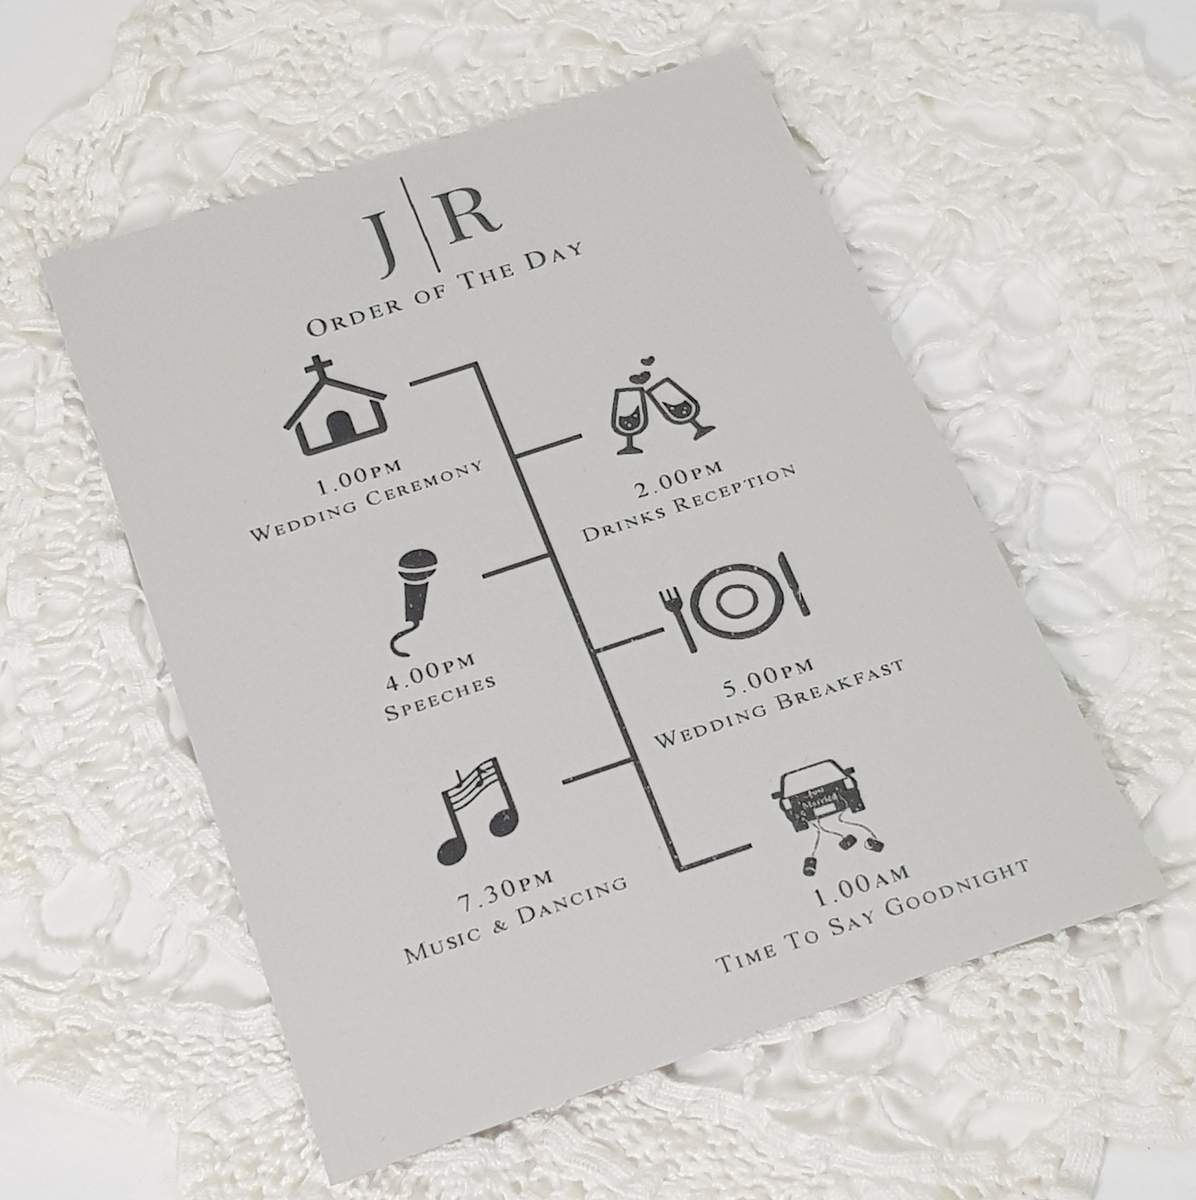 wedding order of the day modern style on grey recycled card